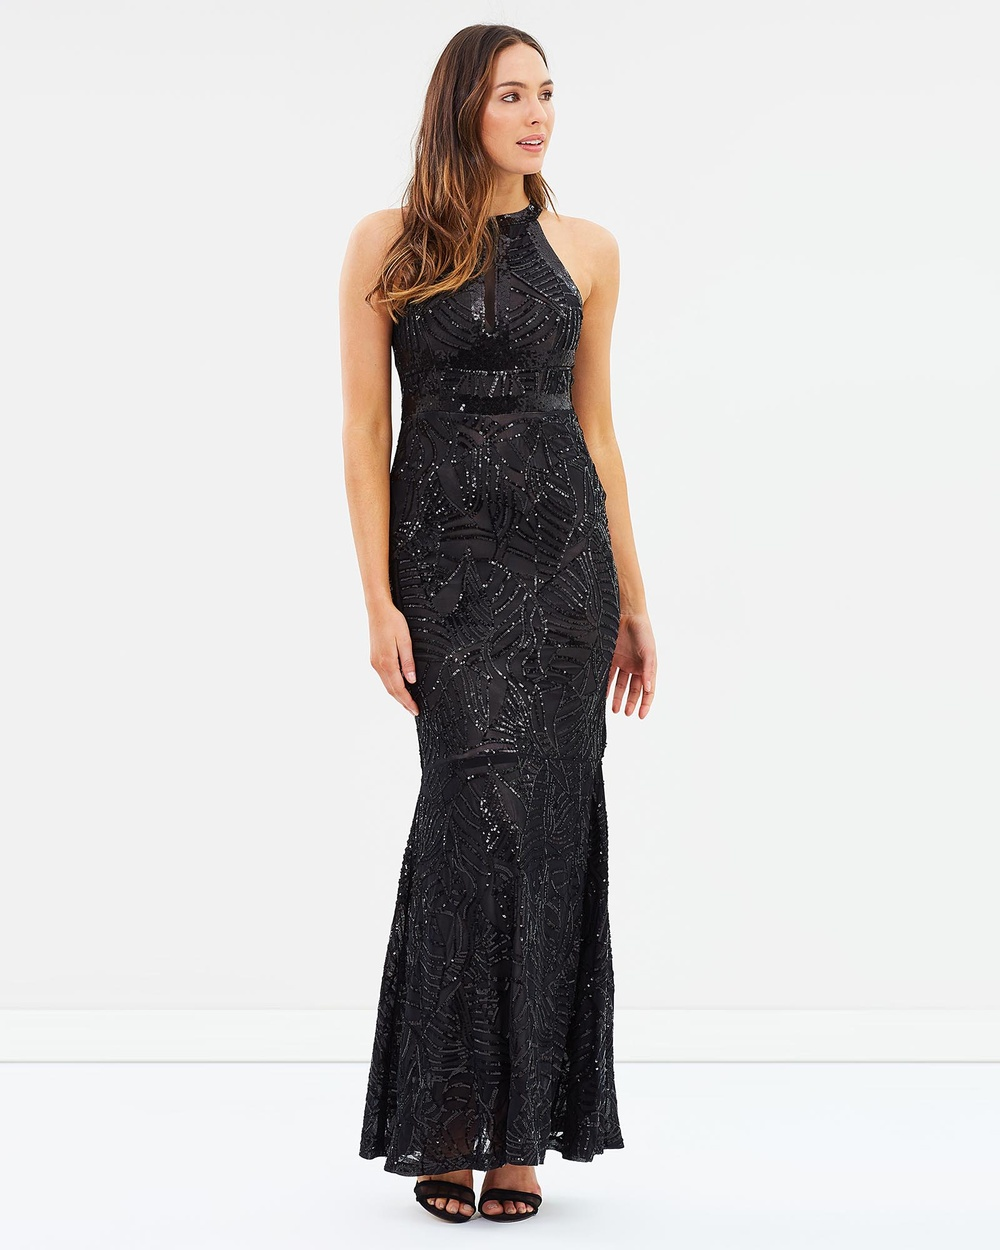 Alabaster The Label Black & Nude Enchantment Sequin Dress